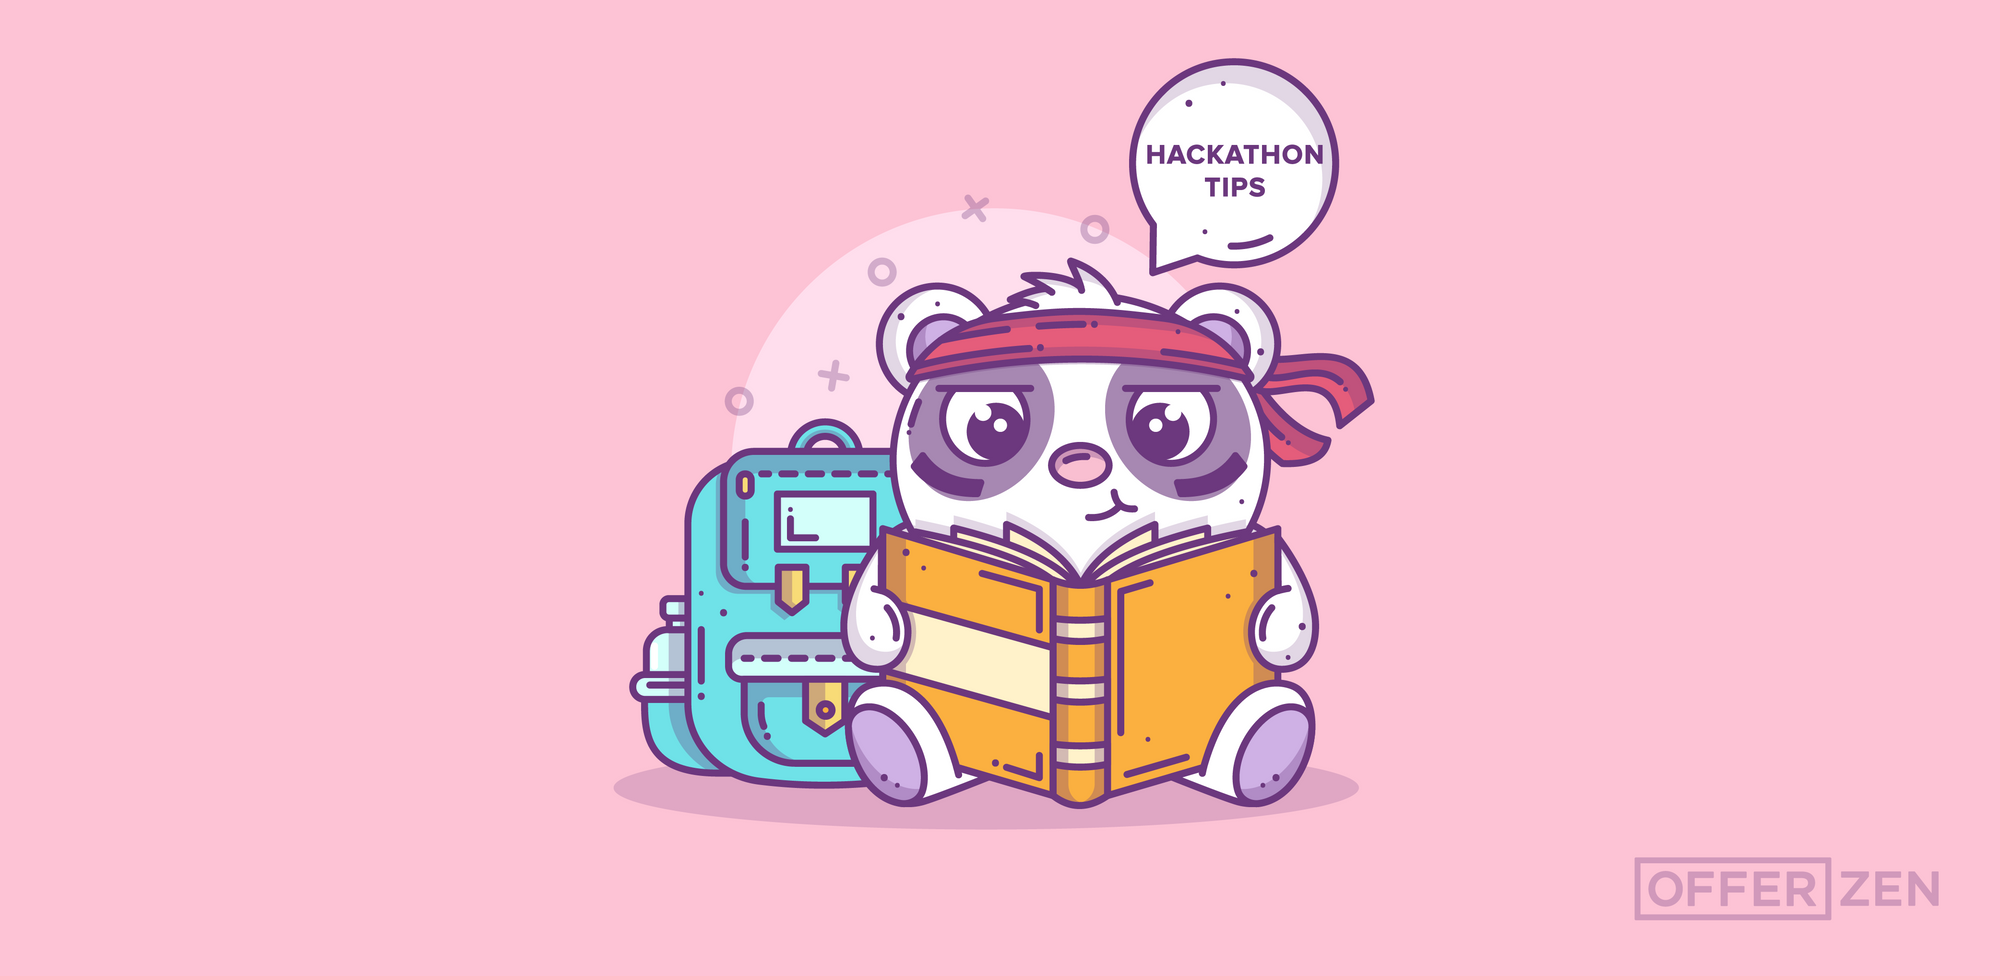 Lihle_Panda-with-book_Three-Hacks-to-Nail-Your-First-Hackathon_Inner-Article-Image-02